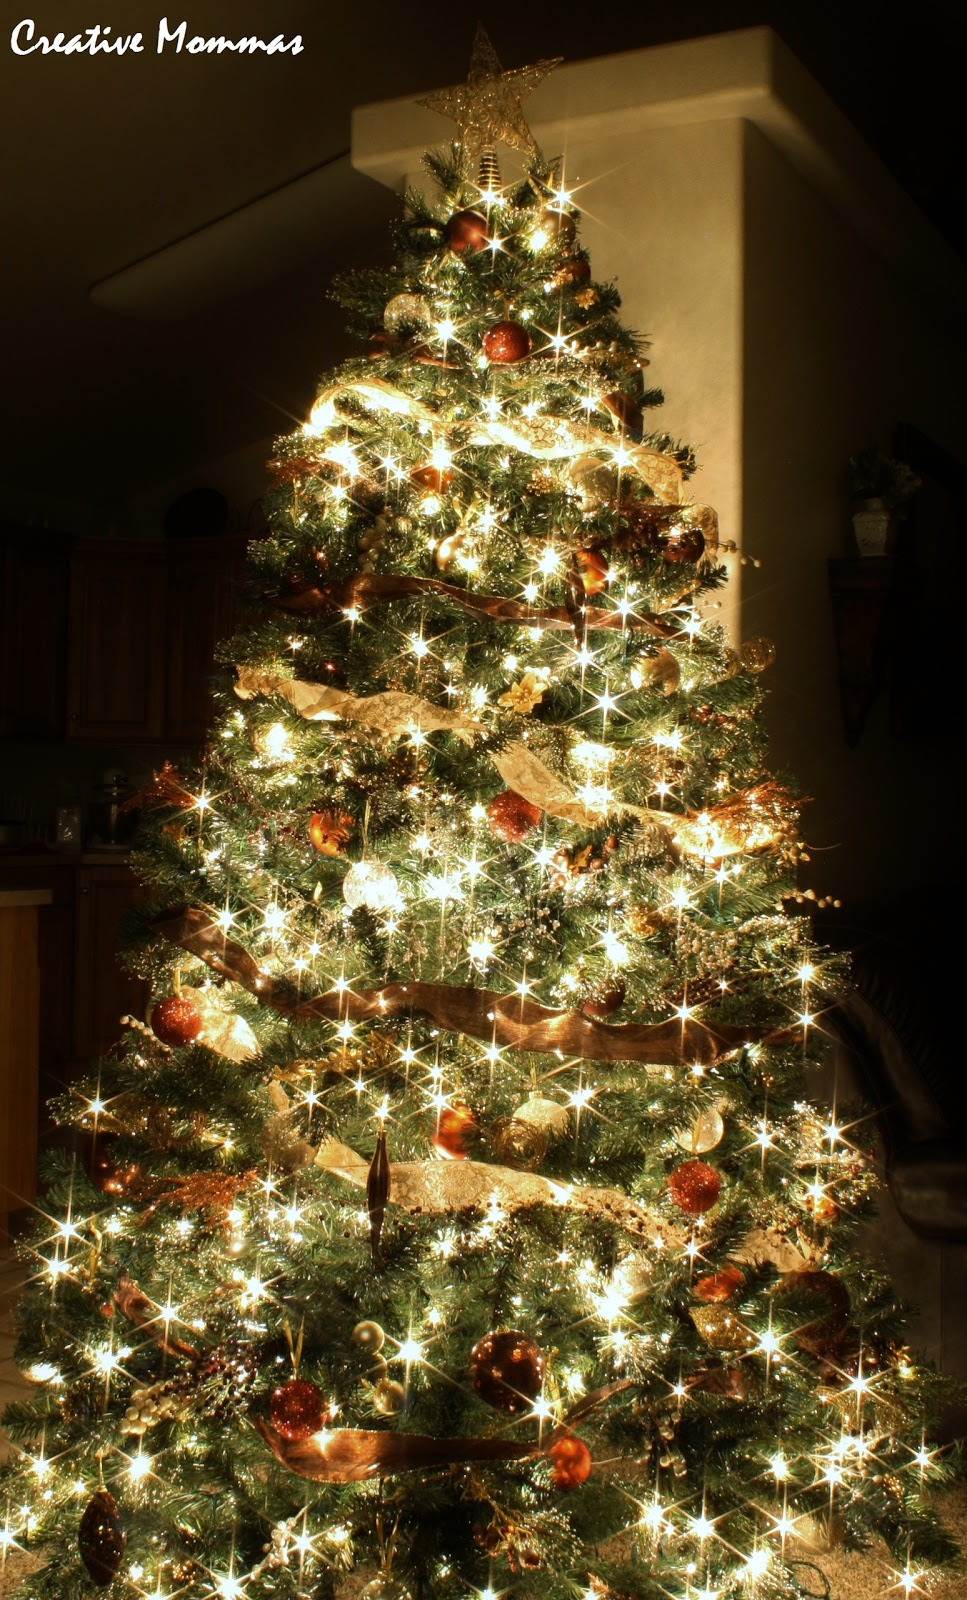 Http Acreativemomma Blogspot Ca 2012 12 Decorated Christmas Tree Html